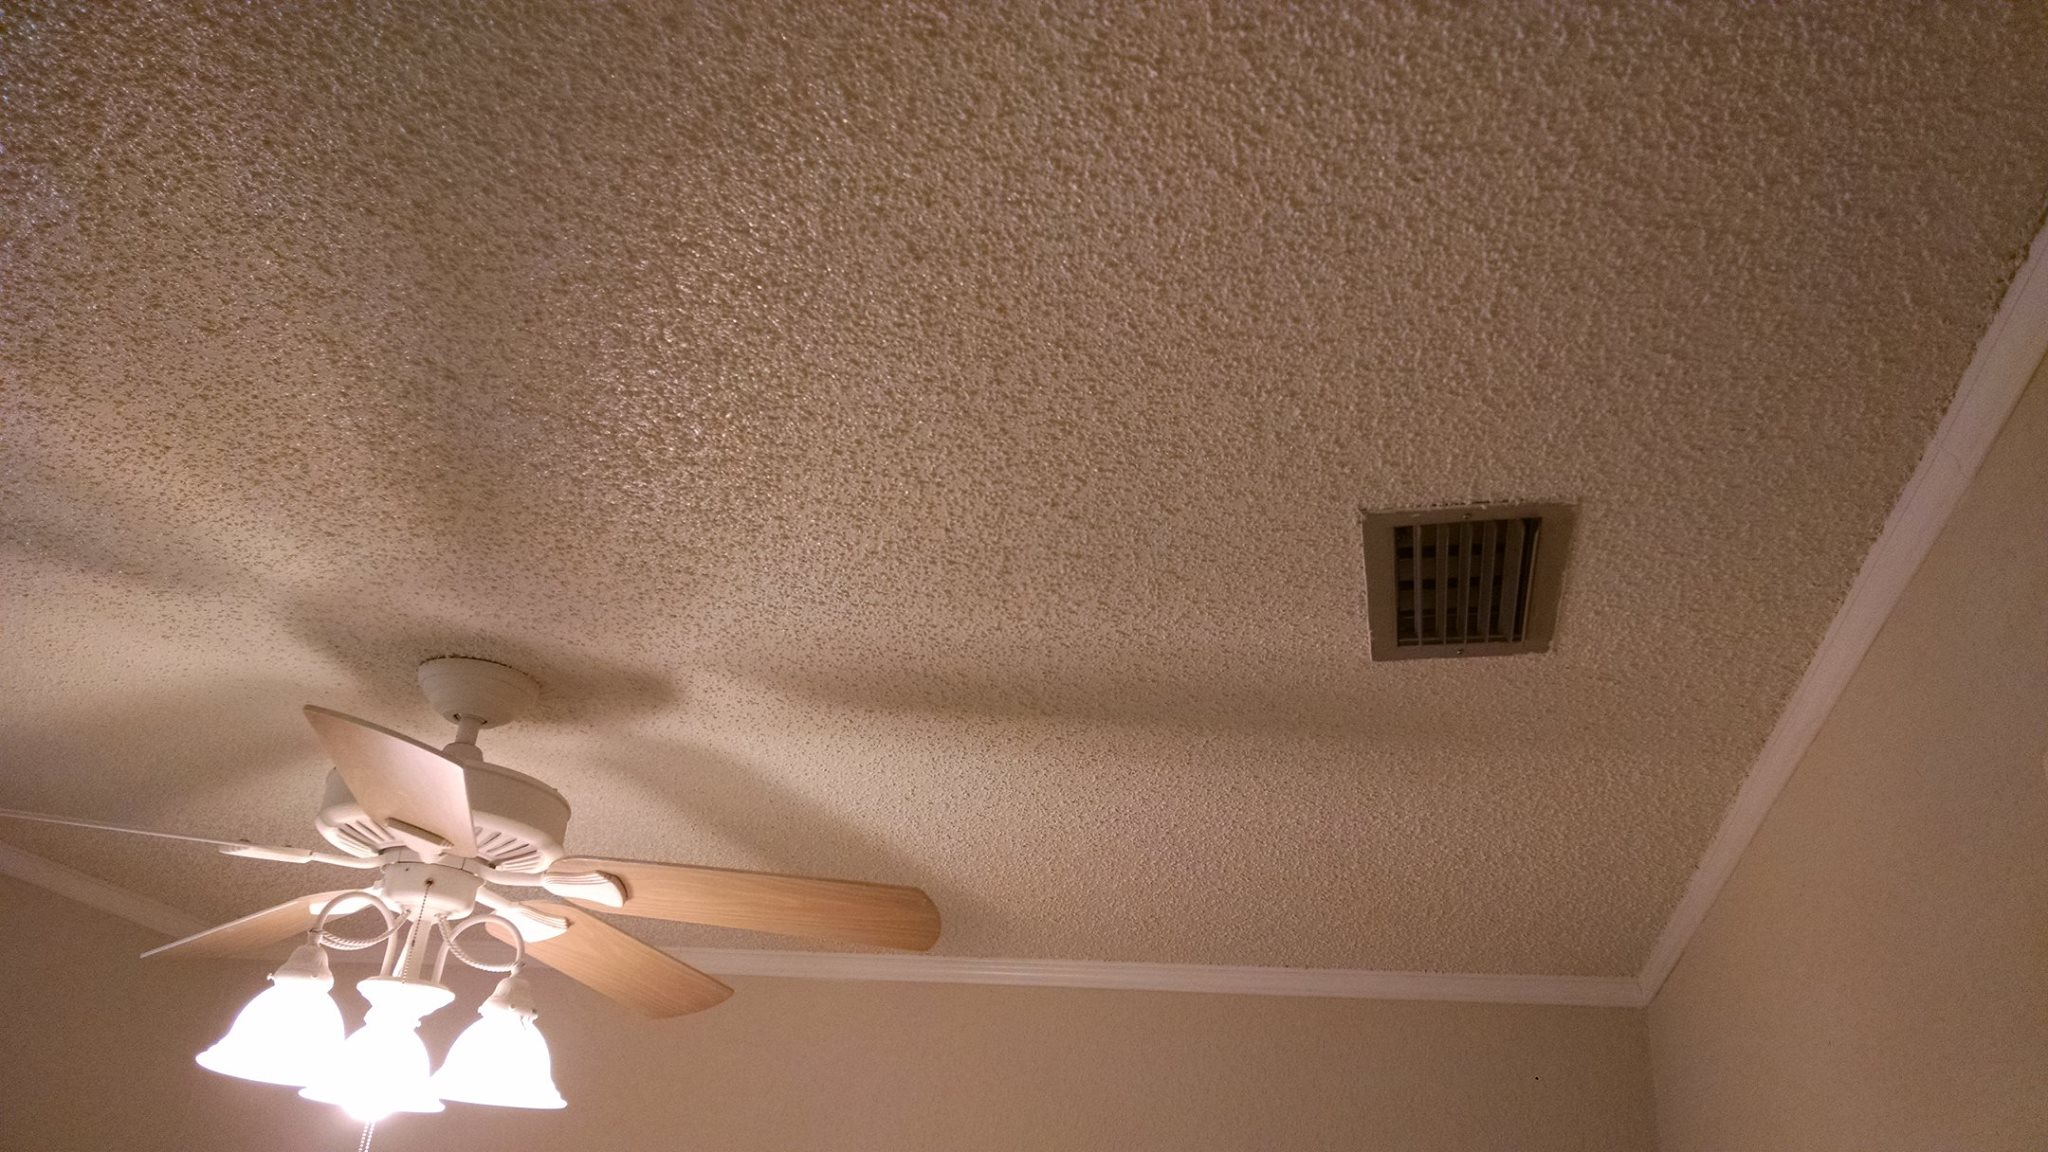 top ceiling plaster in notch repair repairs expert before residential rochester ny